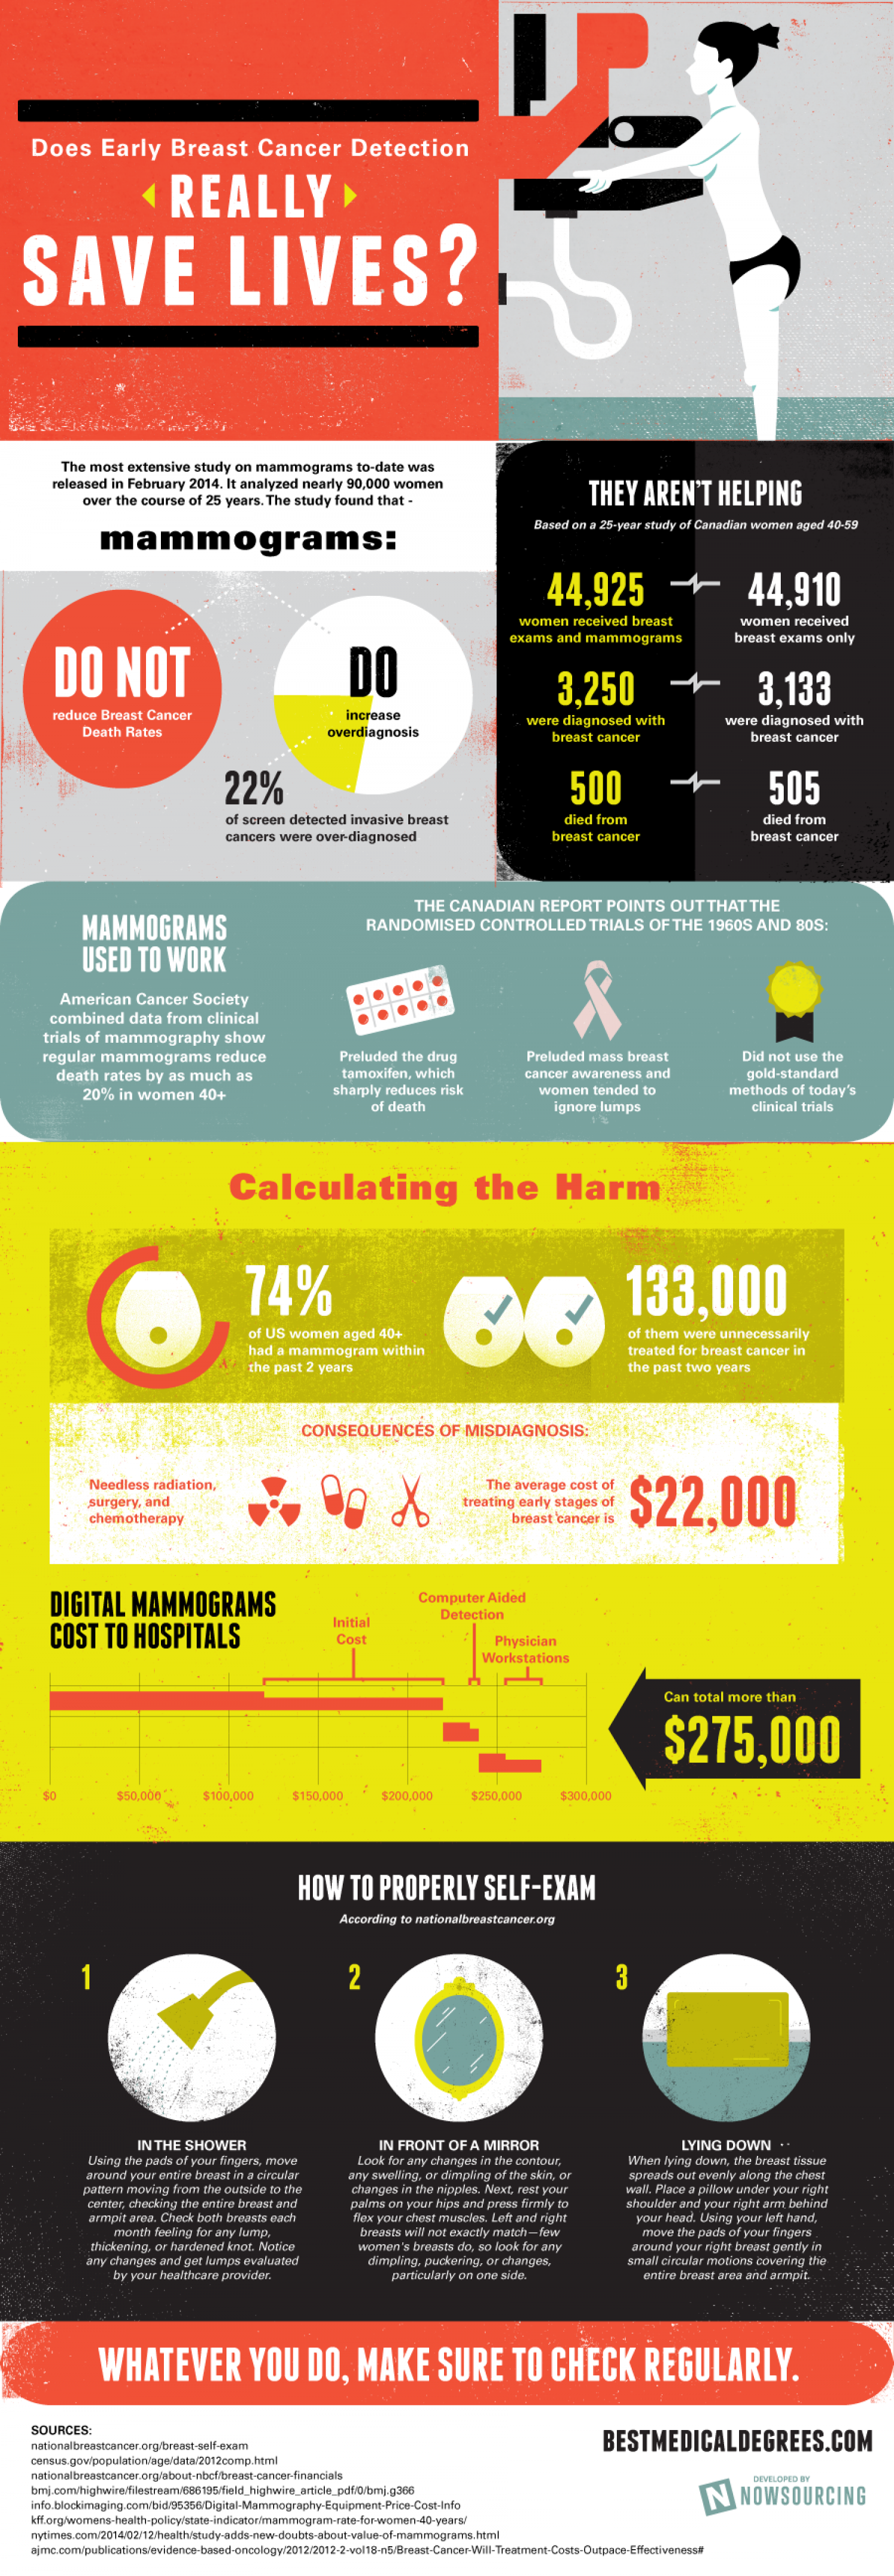 Does Early Breast Cancer Detection Really Save Lives? Infographic